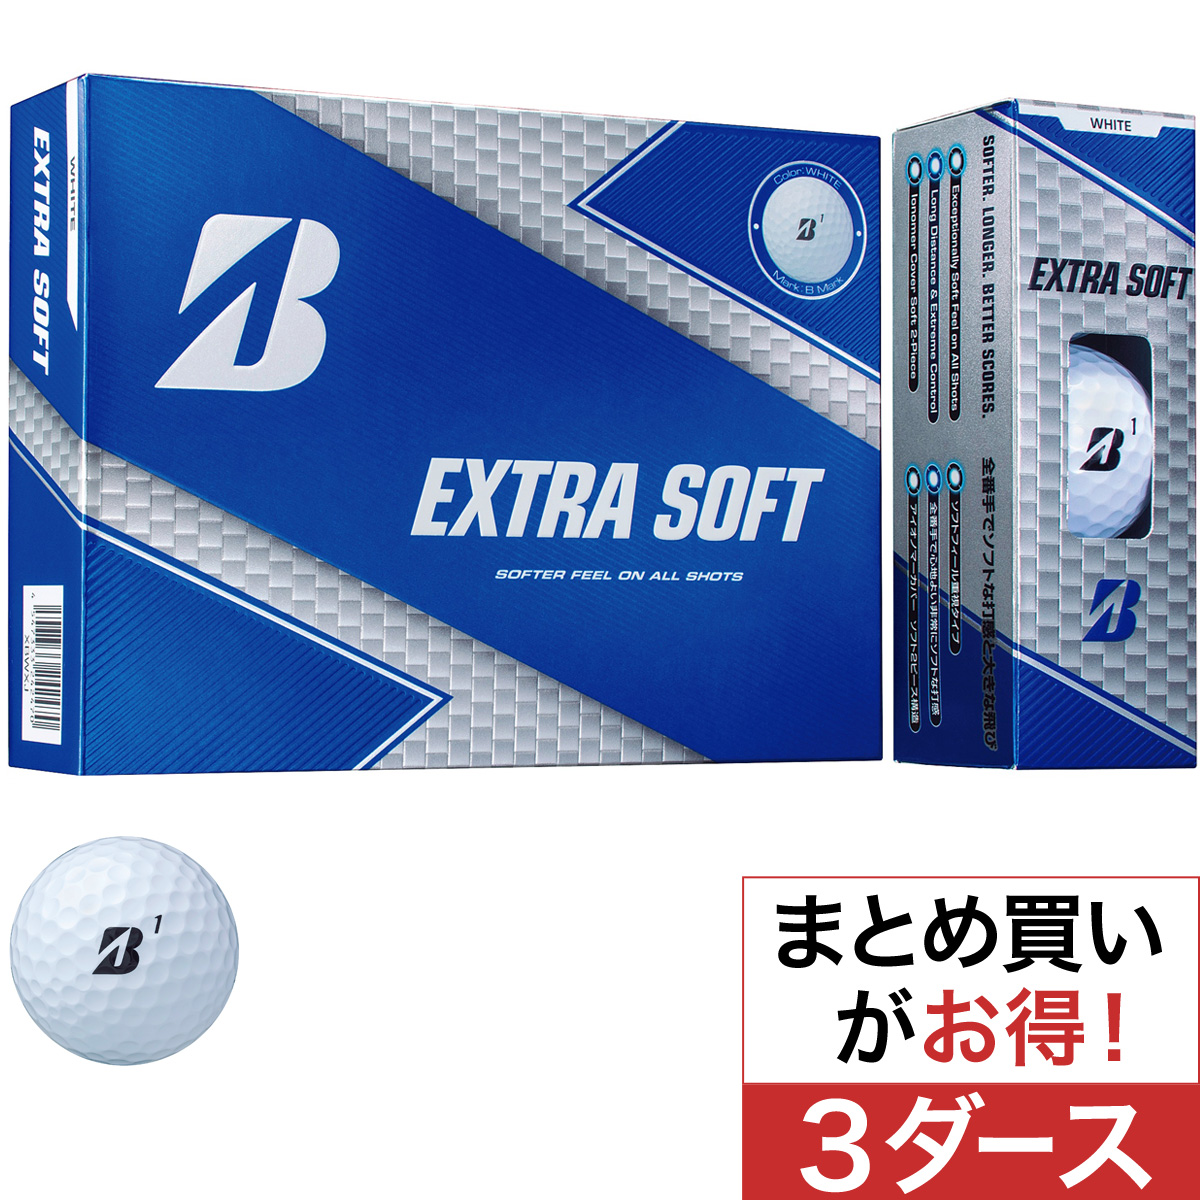 EXTRA SOFT ボール 3ダースセット